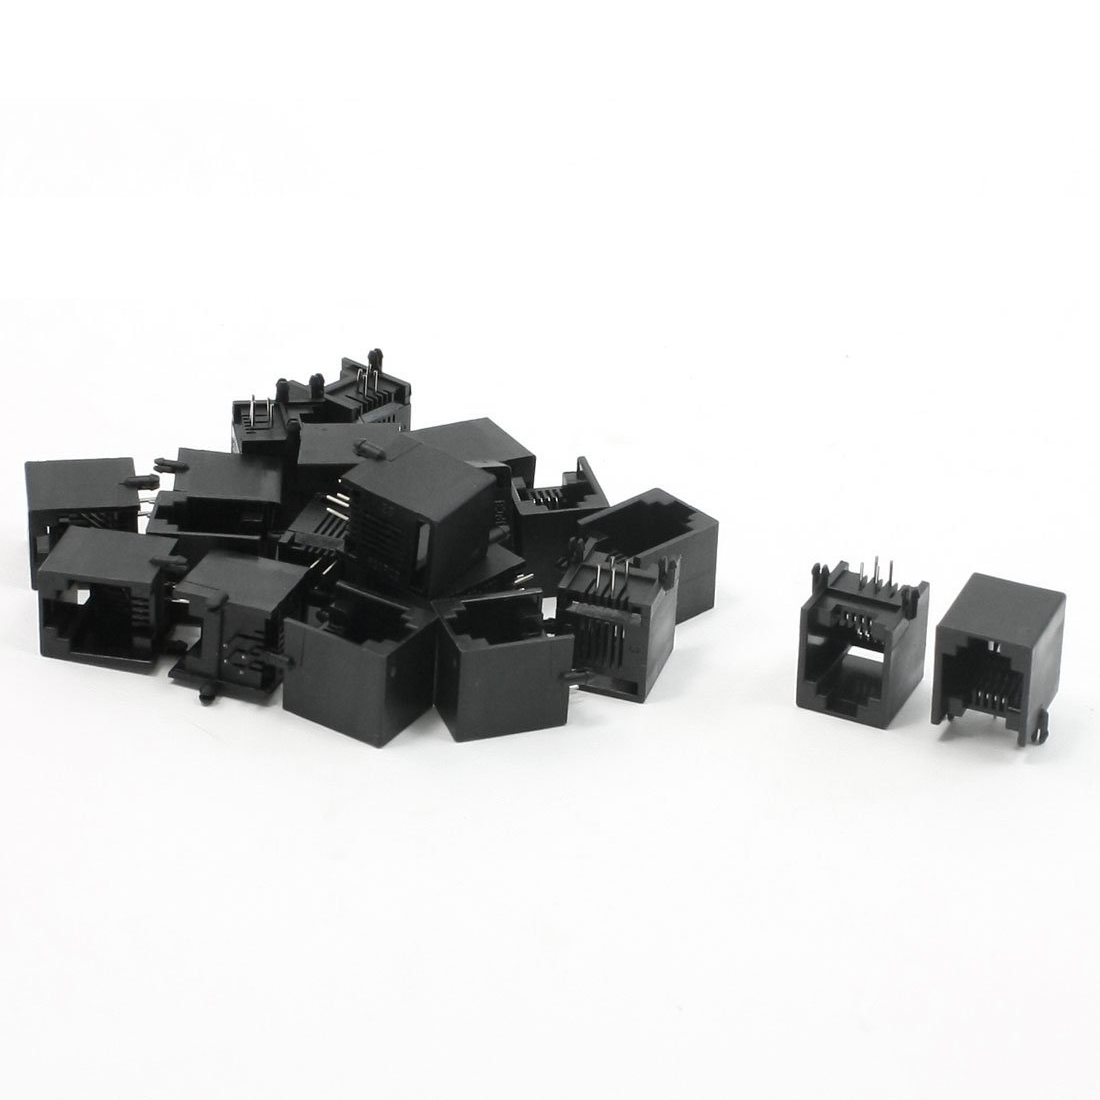 High Quality 20pcs RJ11 6P4C Computer Internet Network PCB Jack Socket Black 24 pcs rj45 modular network pcb jack 56 8p w led 4 ports